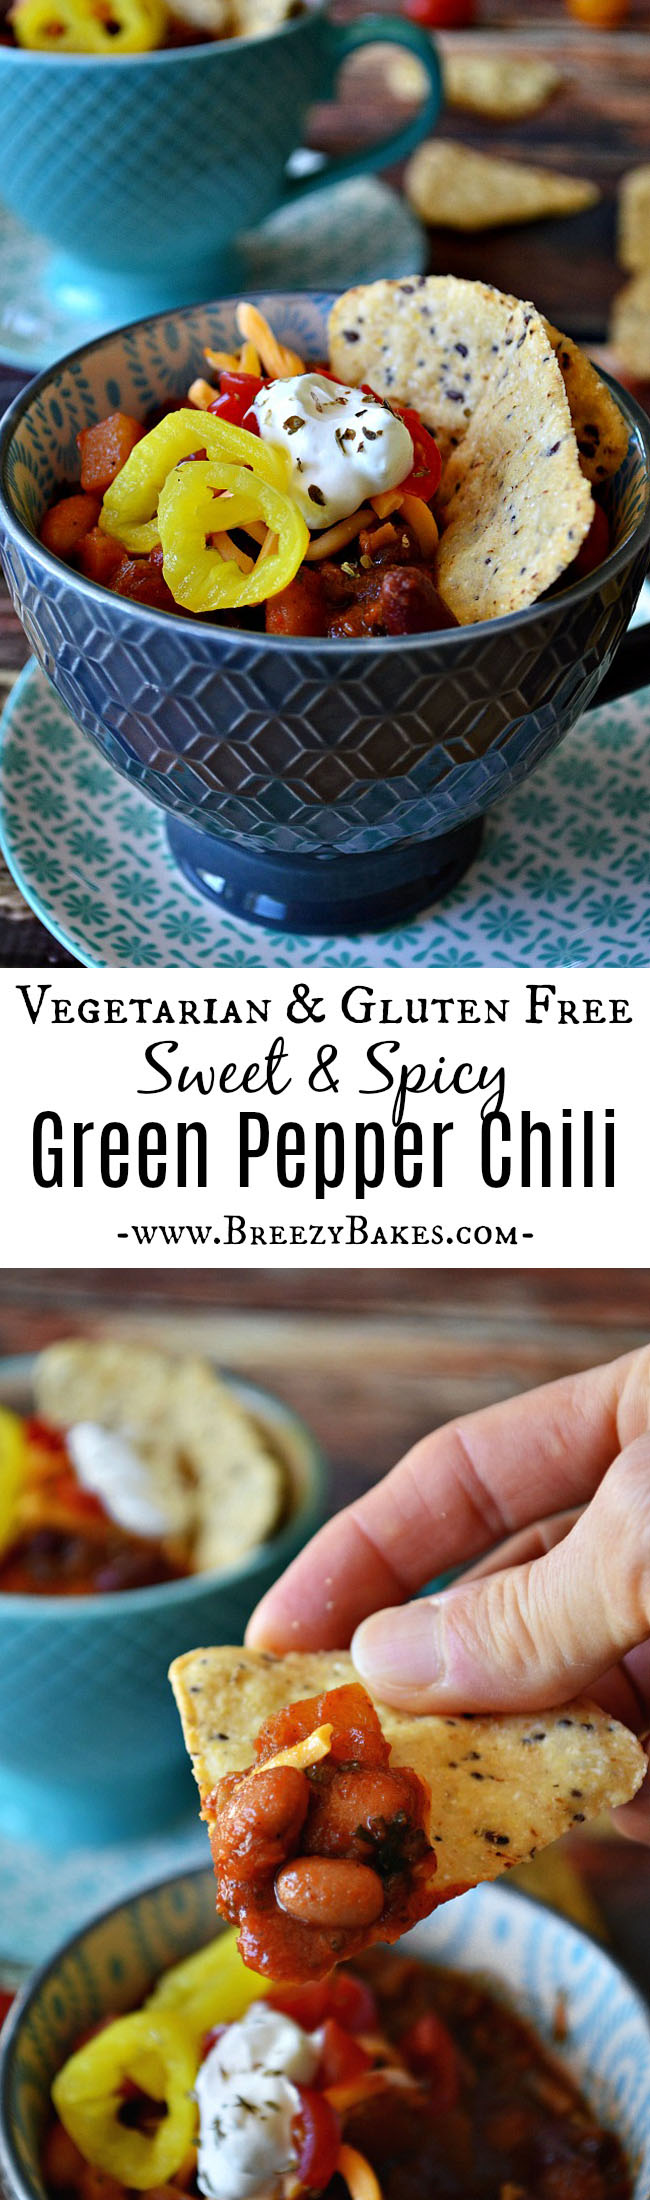 This Vegetarian Sweet Green Pepper Chili has a fiery blend of green peppers and a sweet undertone of brown sugar with loads of veggies!